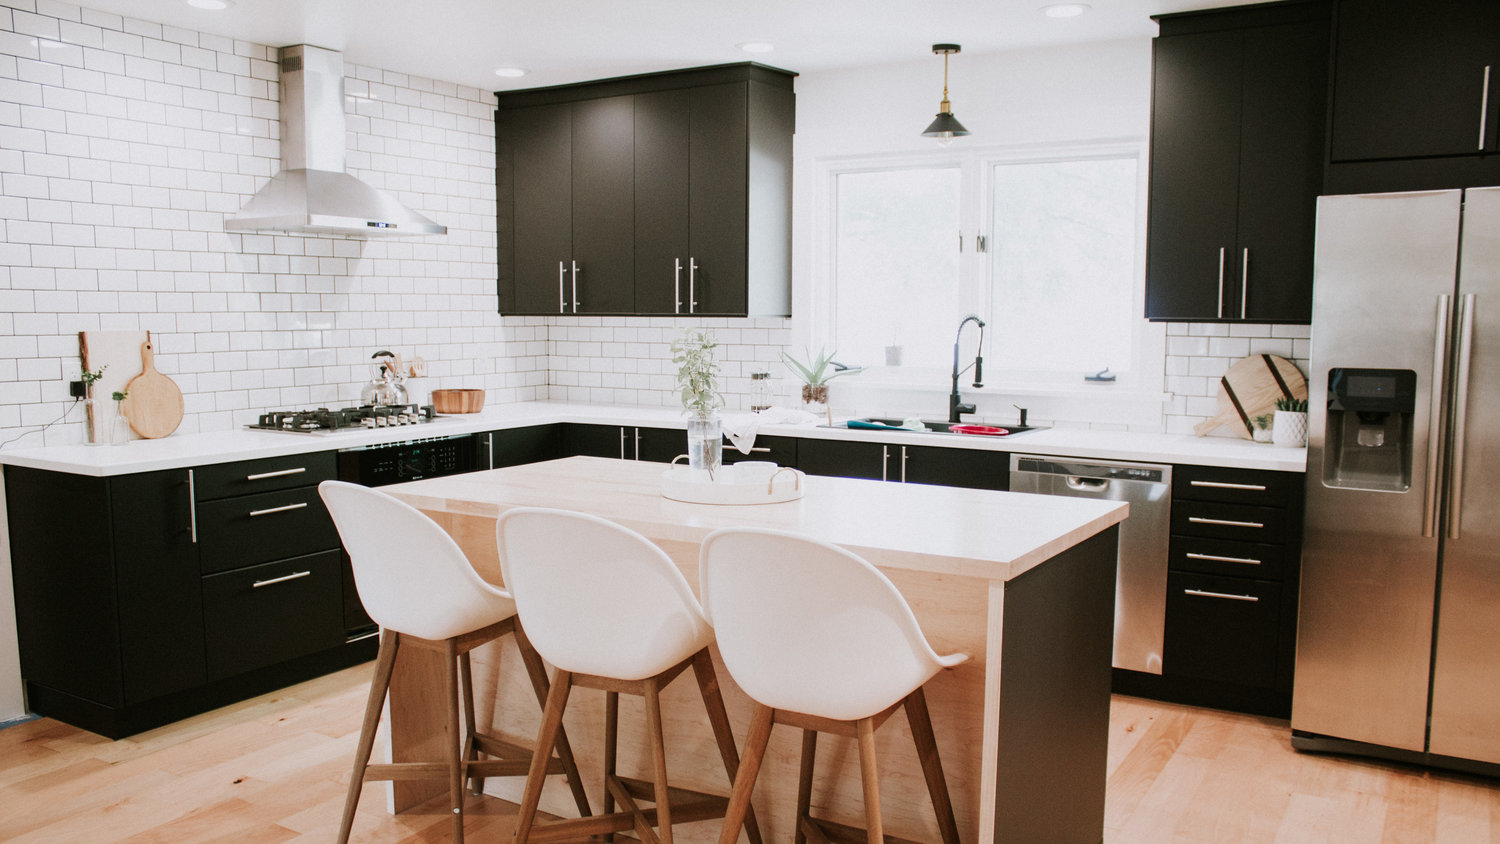 Faq Honest Thoughts About Ikea Cabinets Nadine Stay